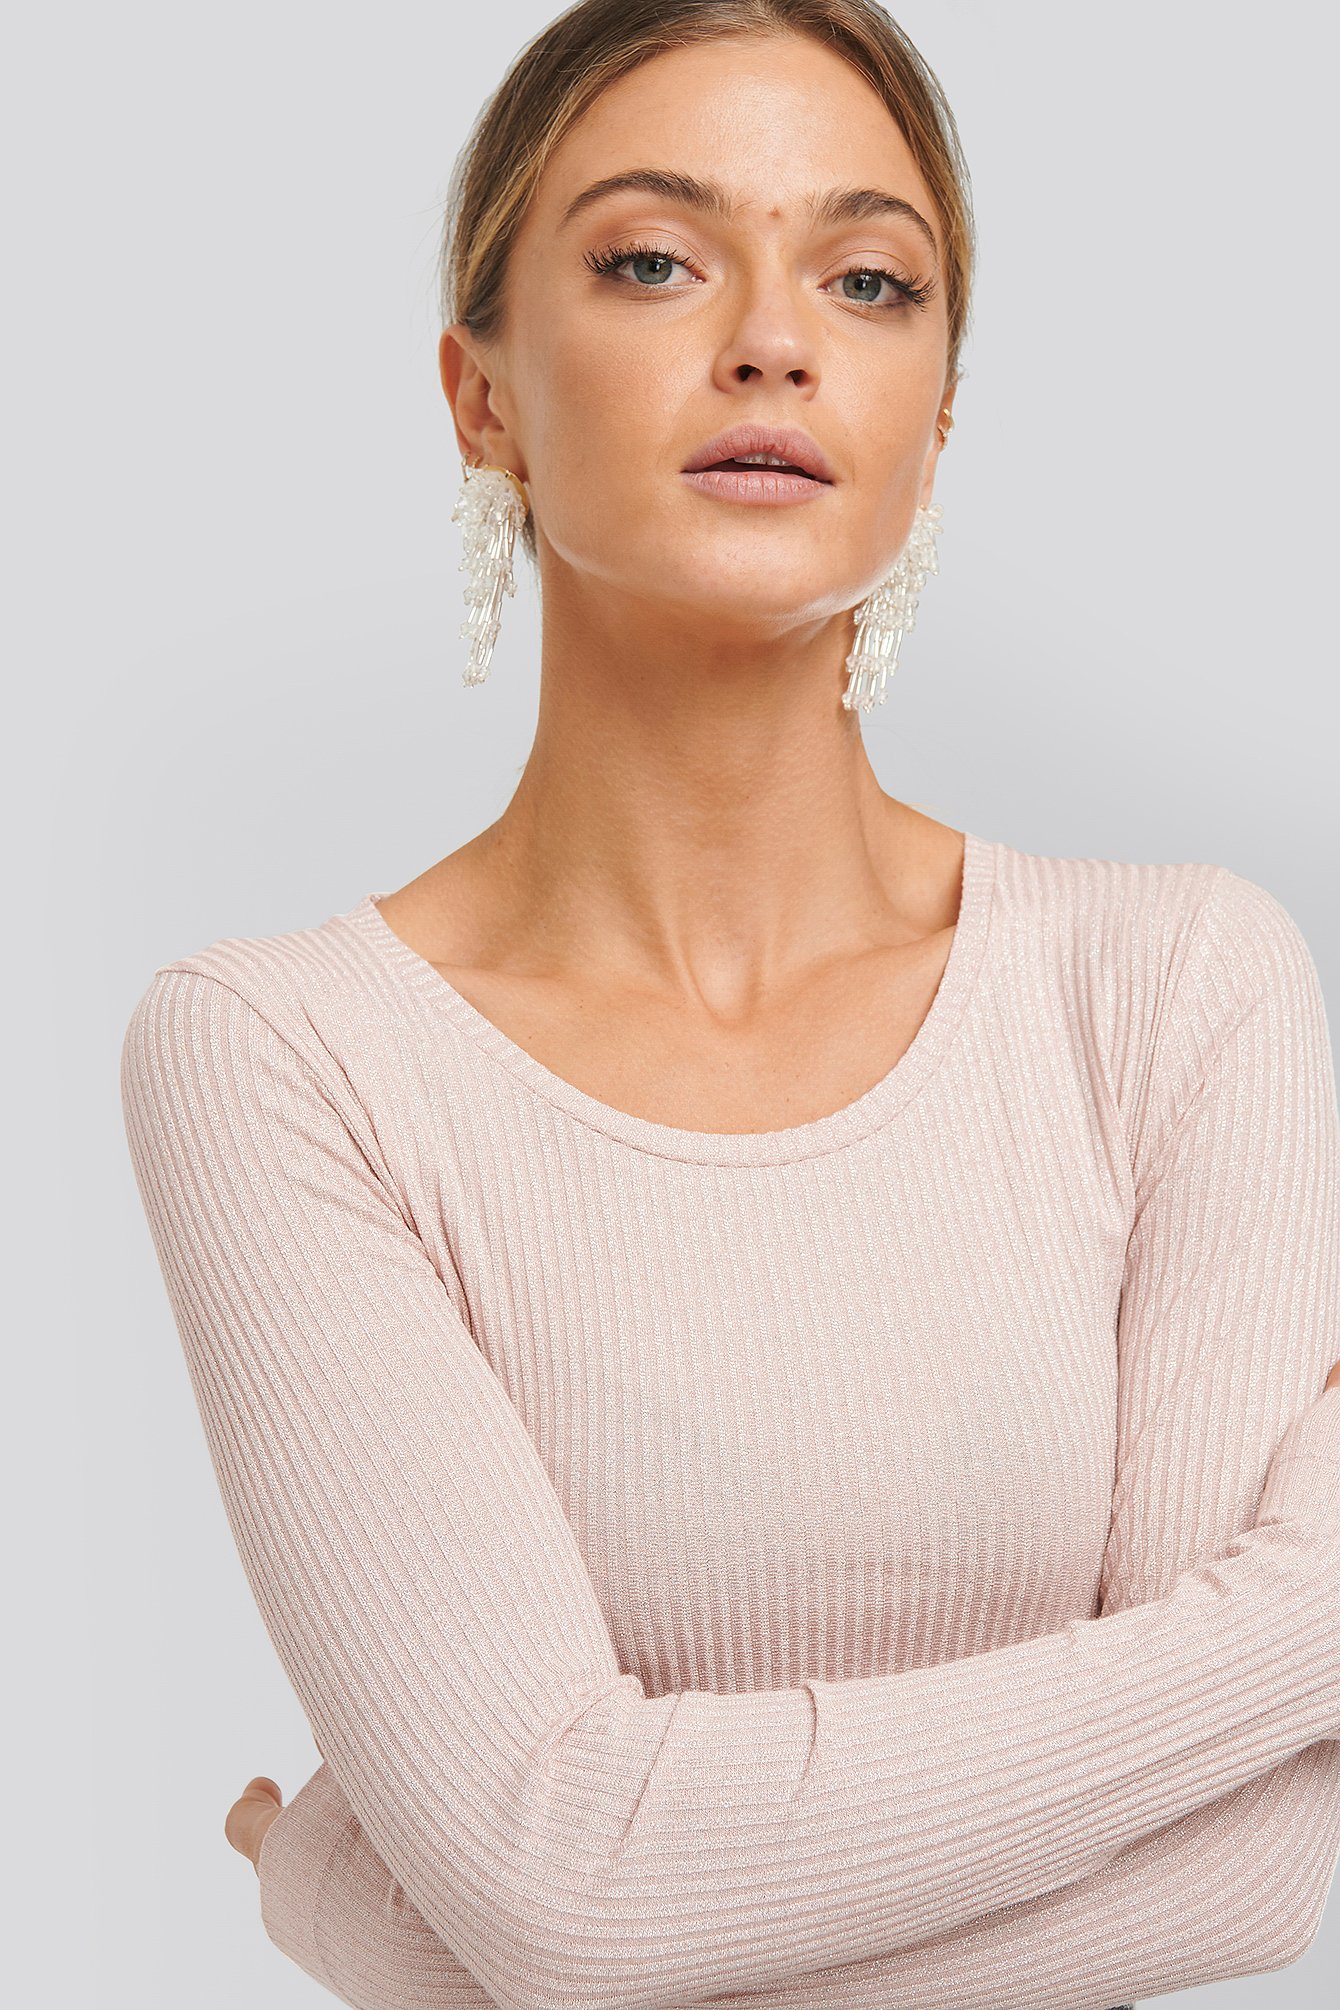 Sparkz Blanka Top - Pink | Bekleidung > Tops > Sonstige Tops | Sparkz